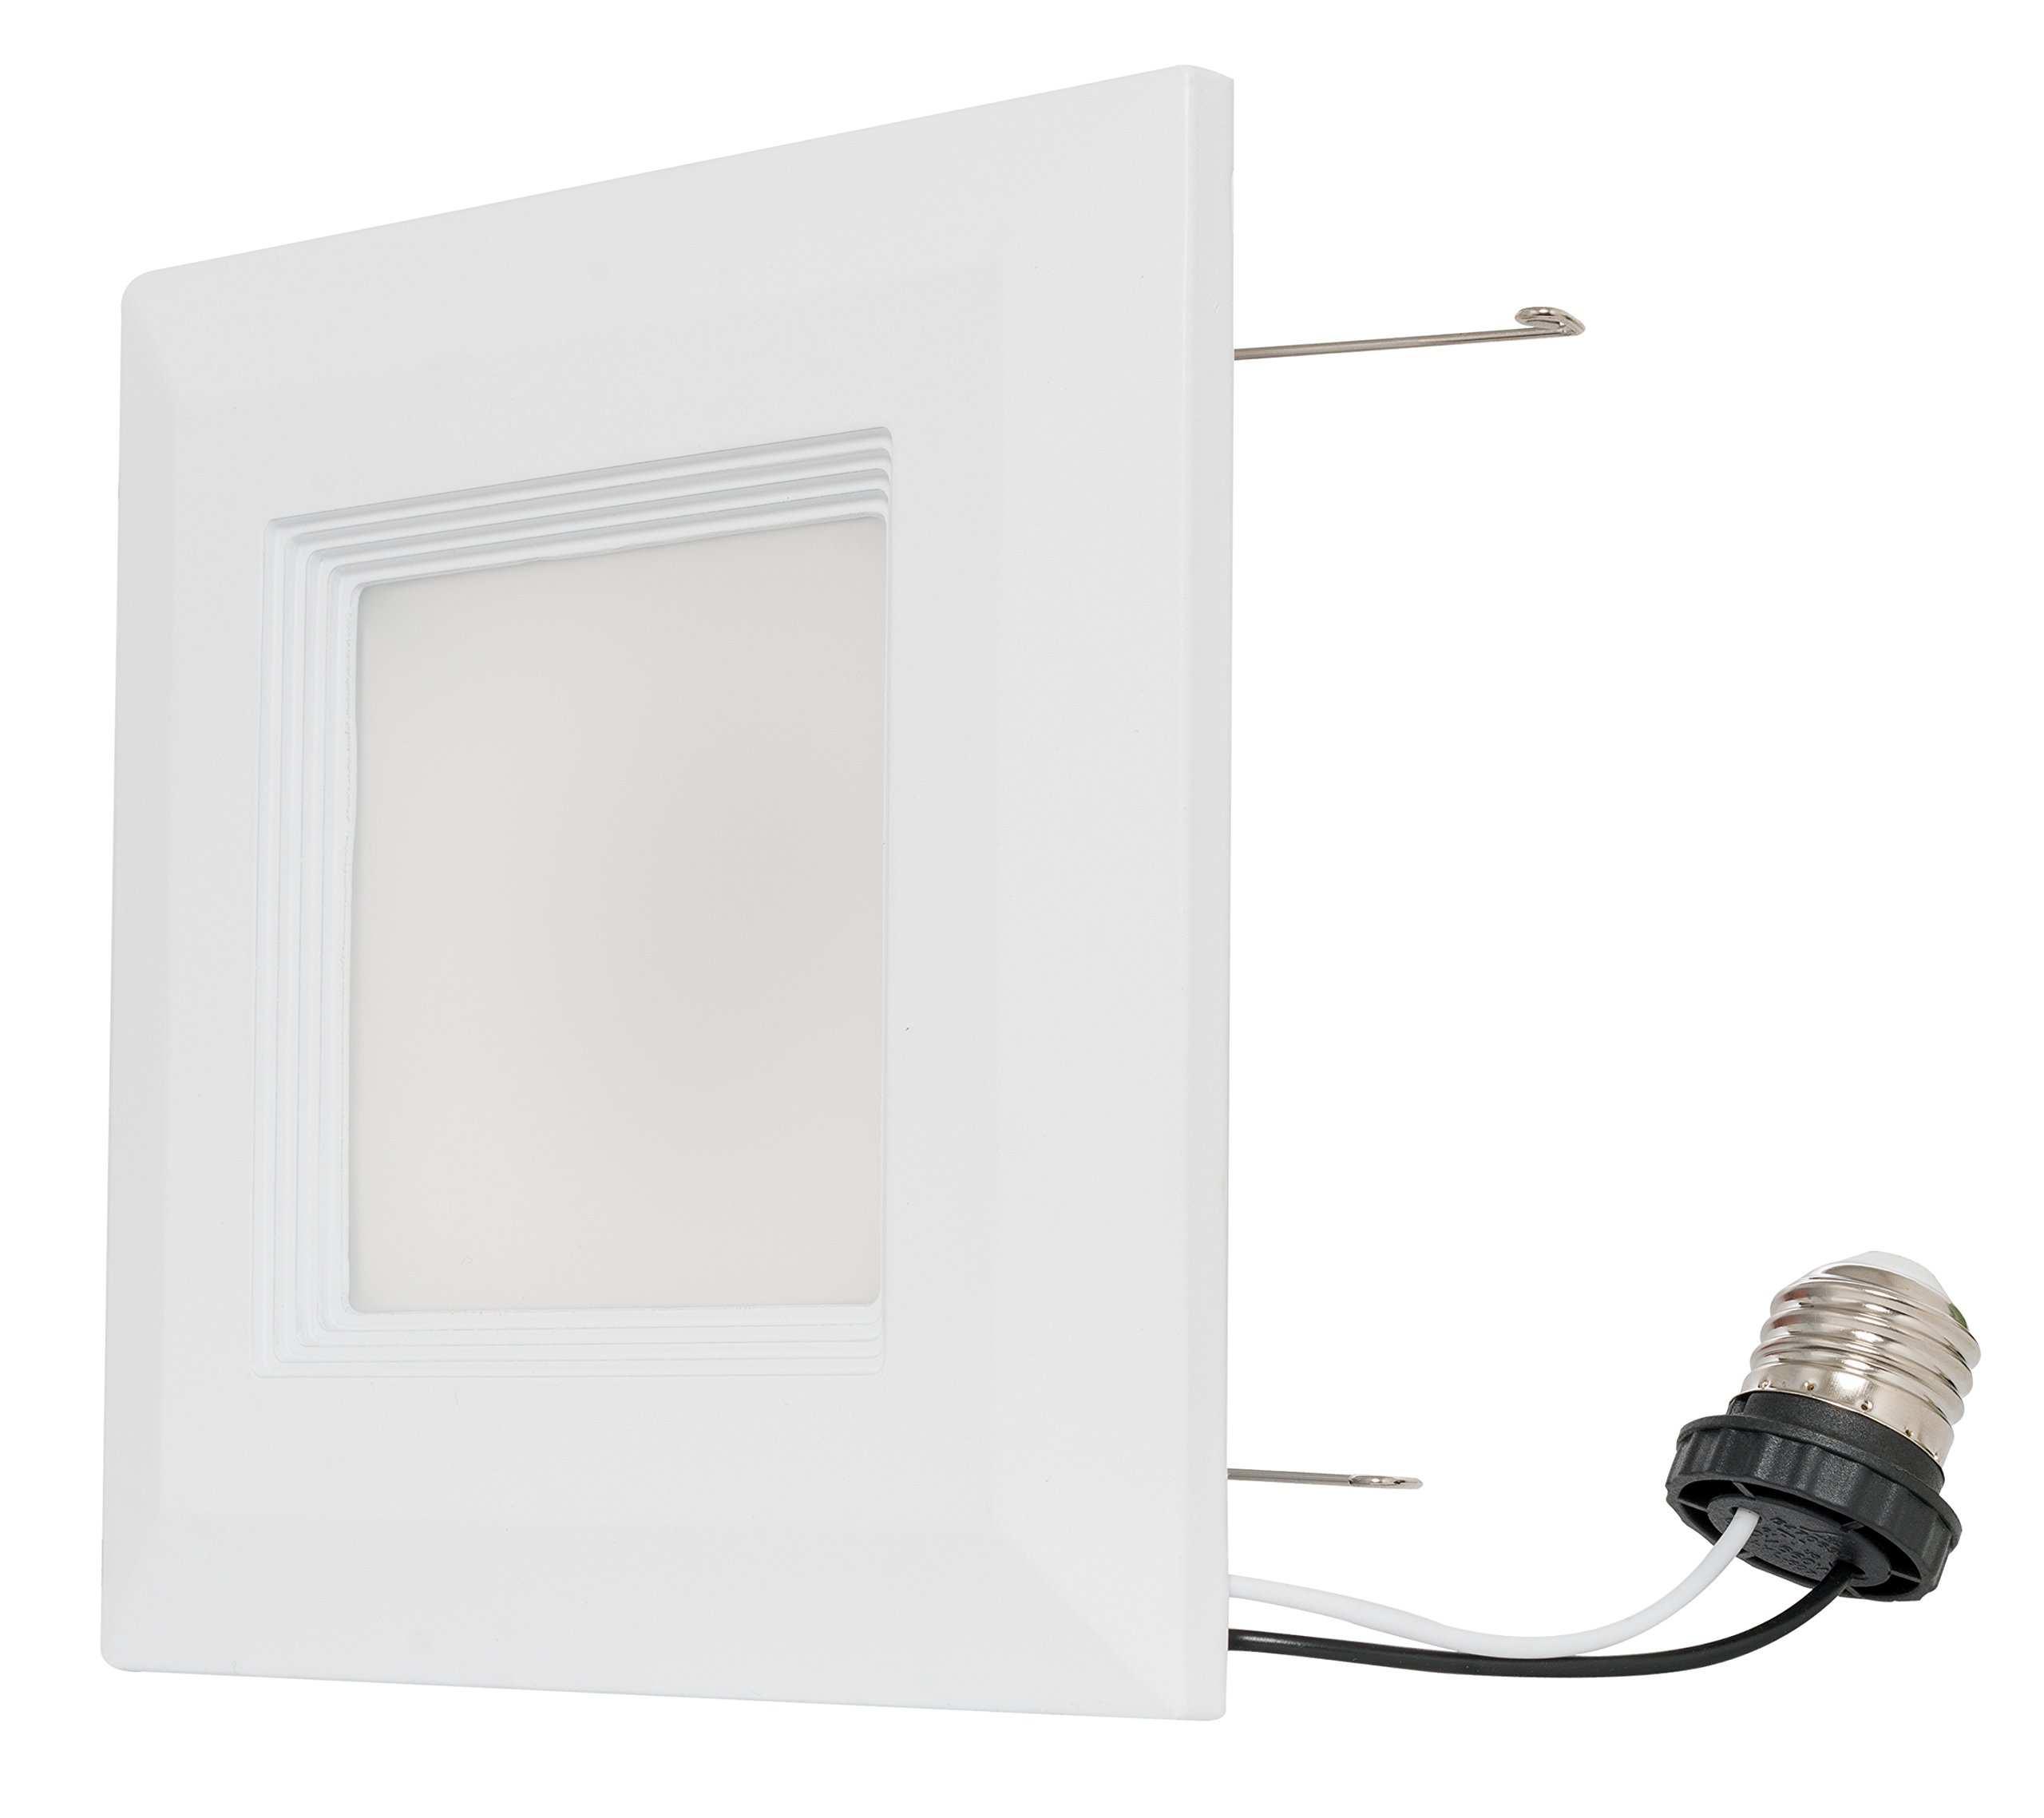 Westgate 15 Watt 6'' Inch Recessed Lighting Kit With Baffle Trim - Square Shaped LED Retrofit Downlight - Premium Dimmable Light Fixture - Best Ceiling Lights - ETL Listed (4100K Cool White, 8 Pack) by Westgate (Image #3)